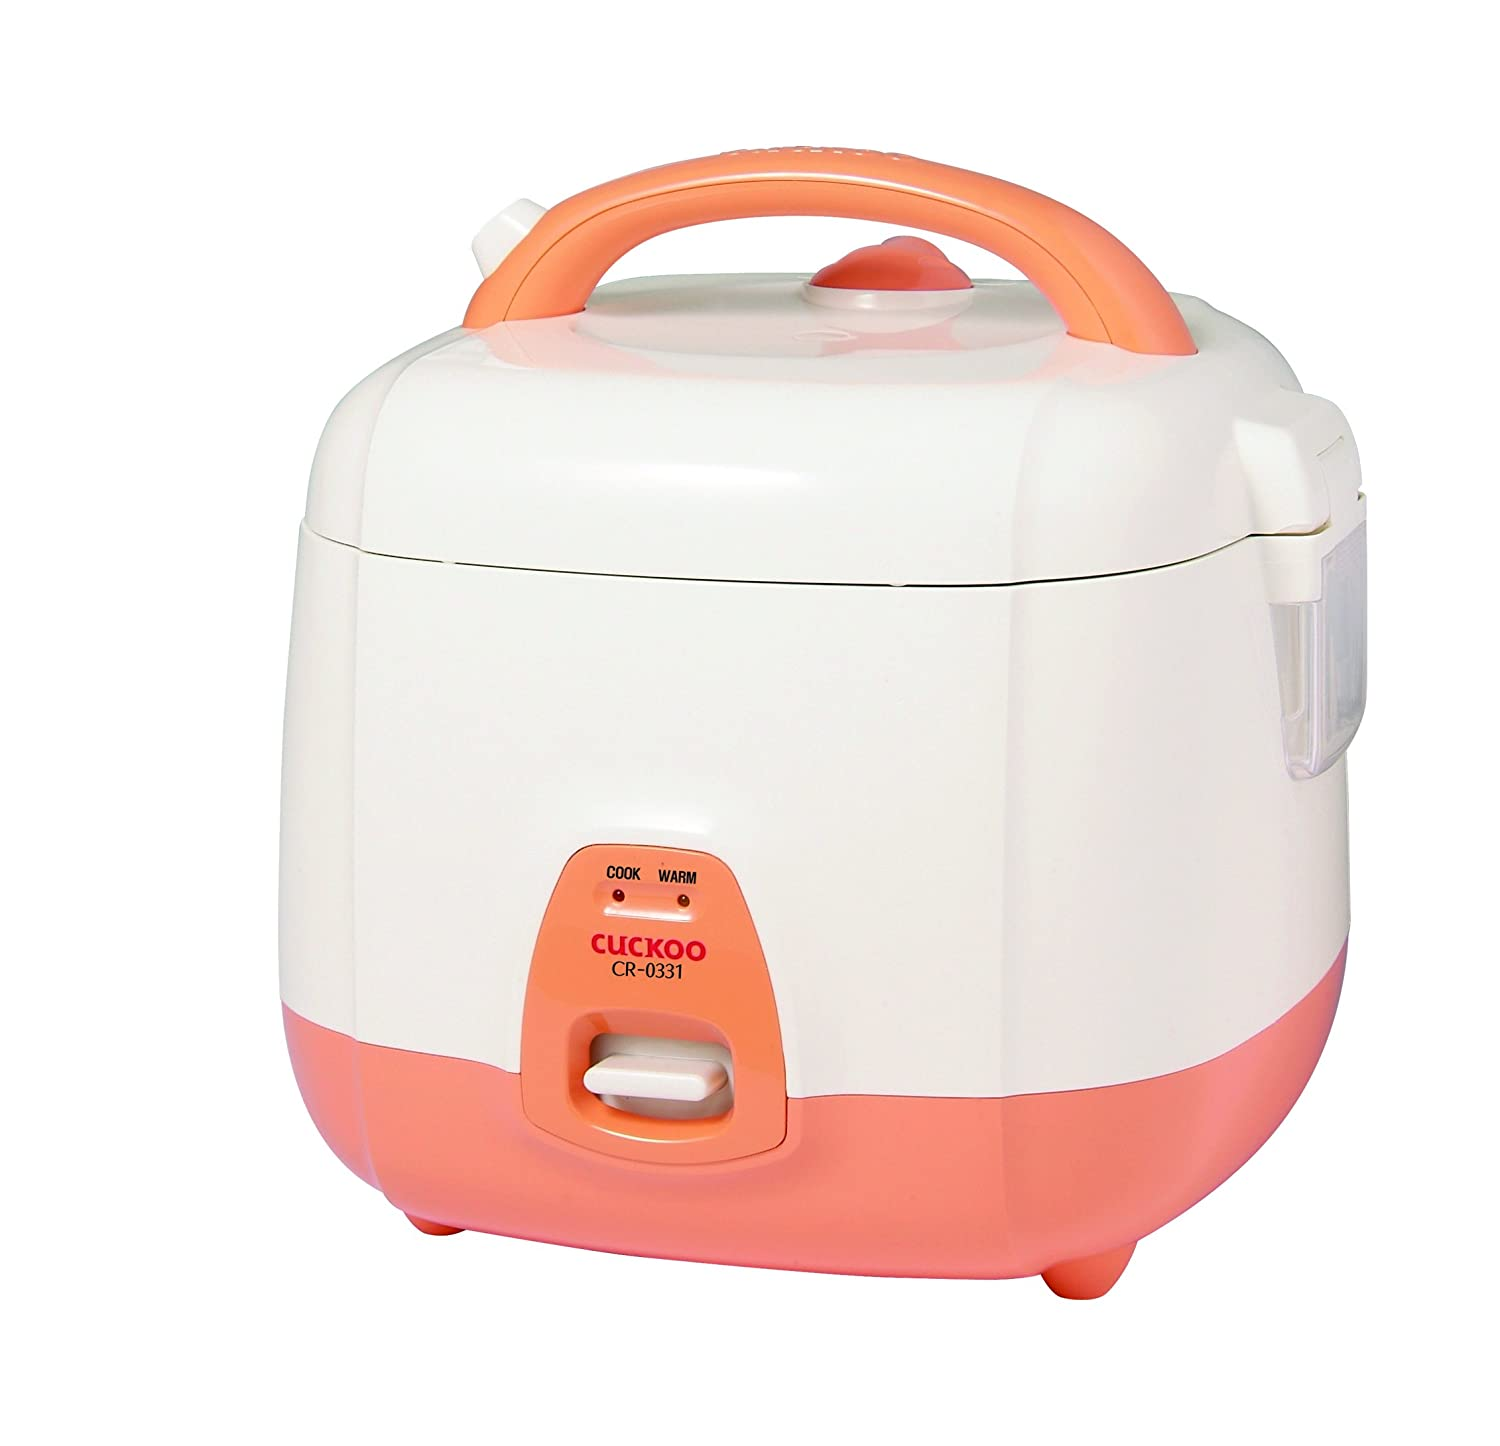 Cuckoo CR-0331 Rice Cooker 3 Cups Uncooked (1.5 Liters / 1.6 Quarts) Orange